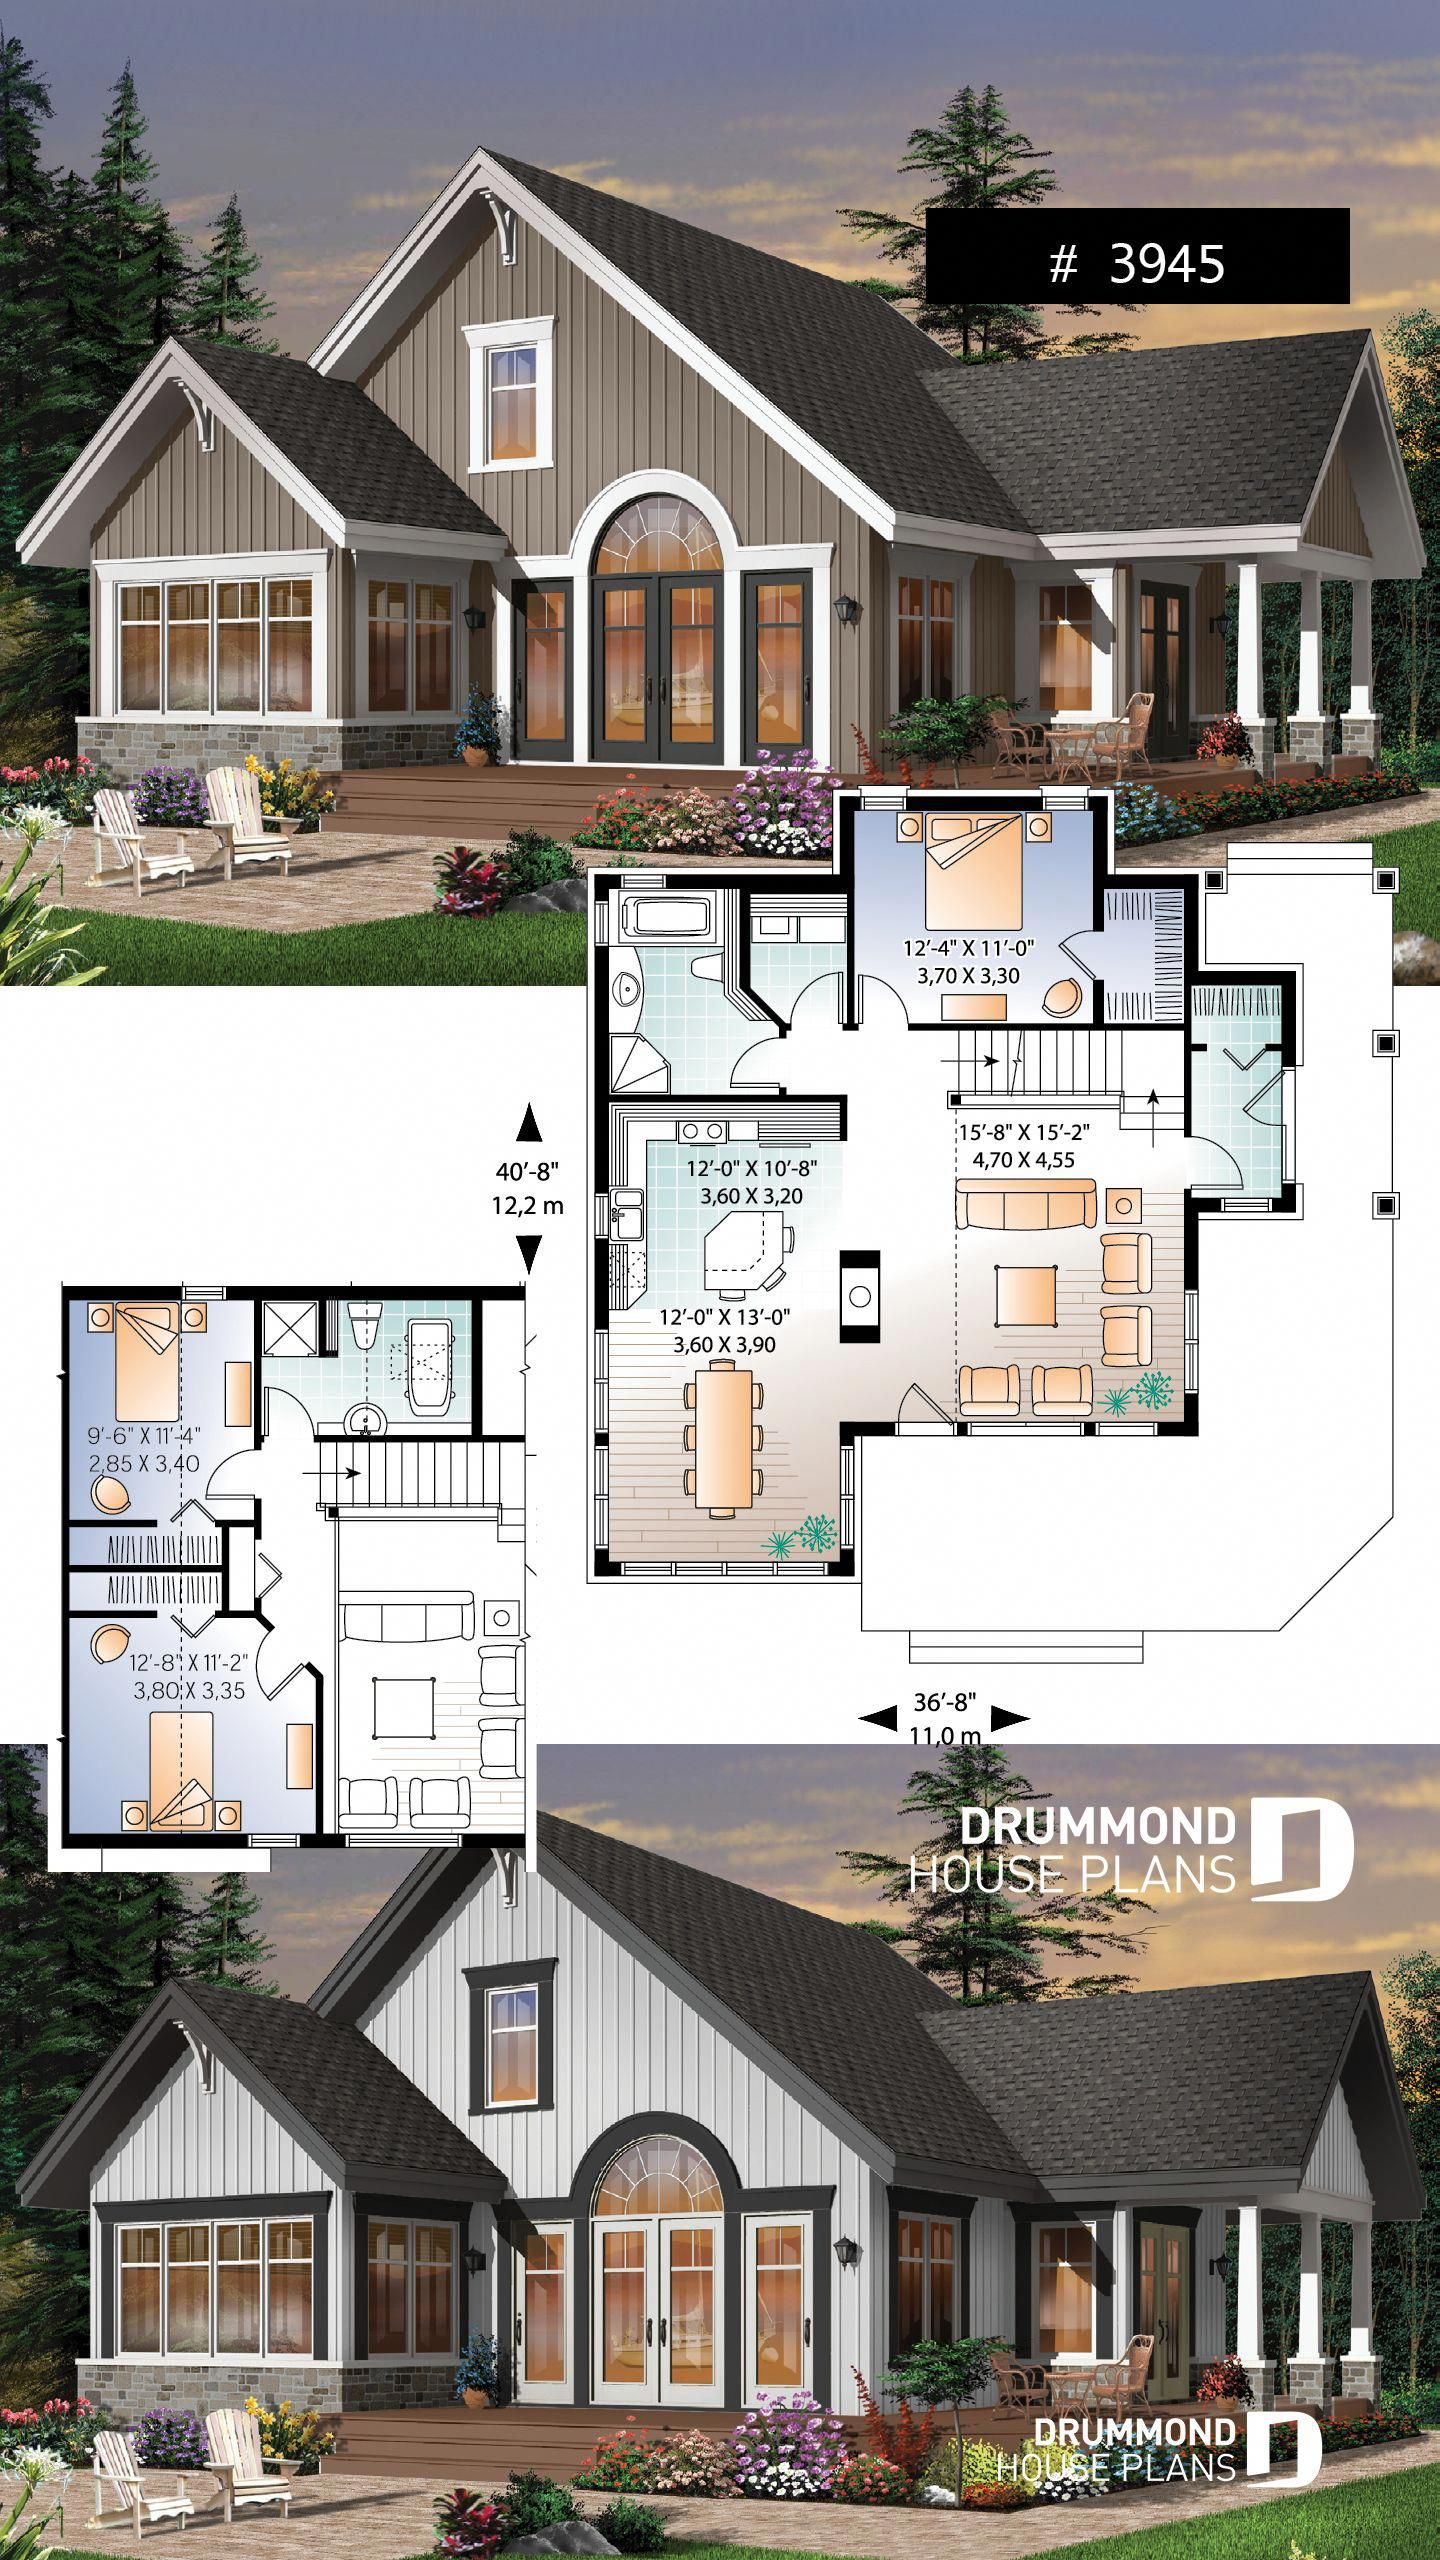 36 Industrial Home Decor Ideas That Will Make You Fall In Love With This Style In 2020 Sims House Plans House Blueprints New House Plans